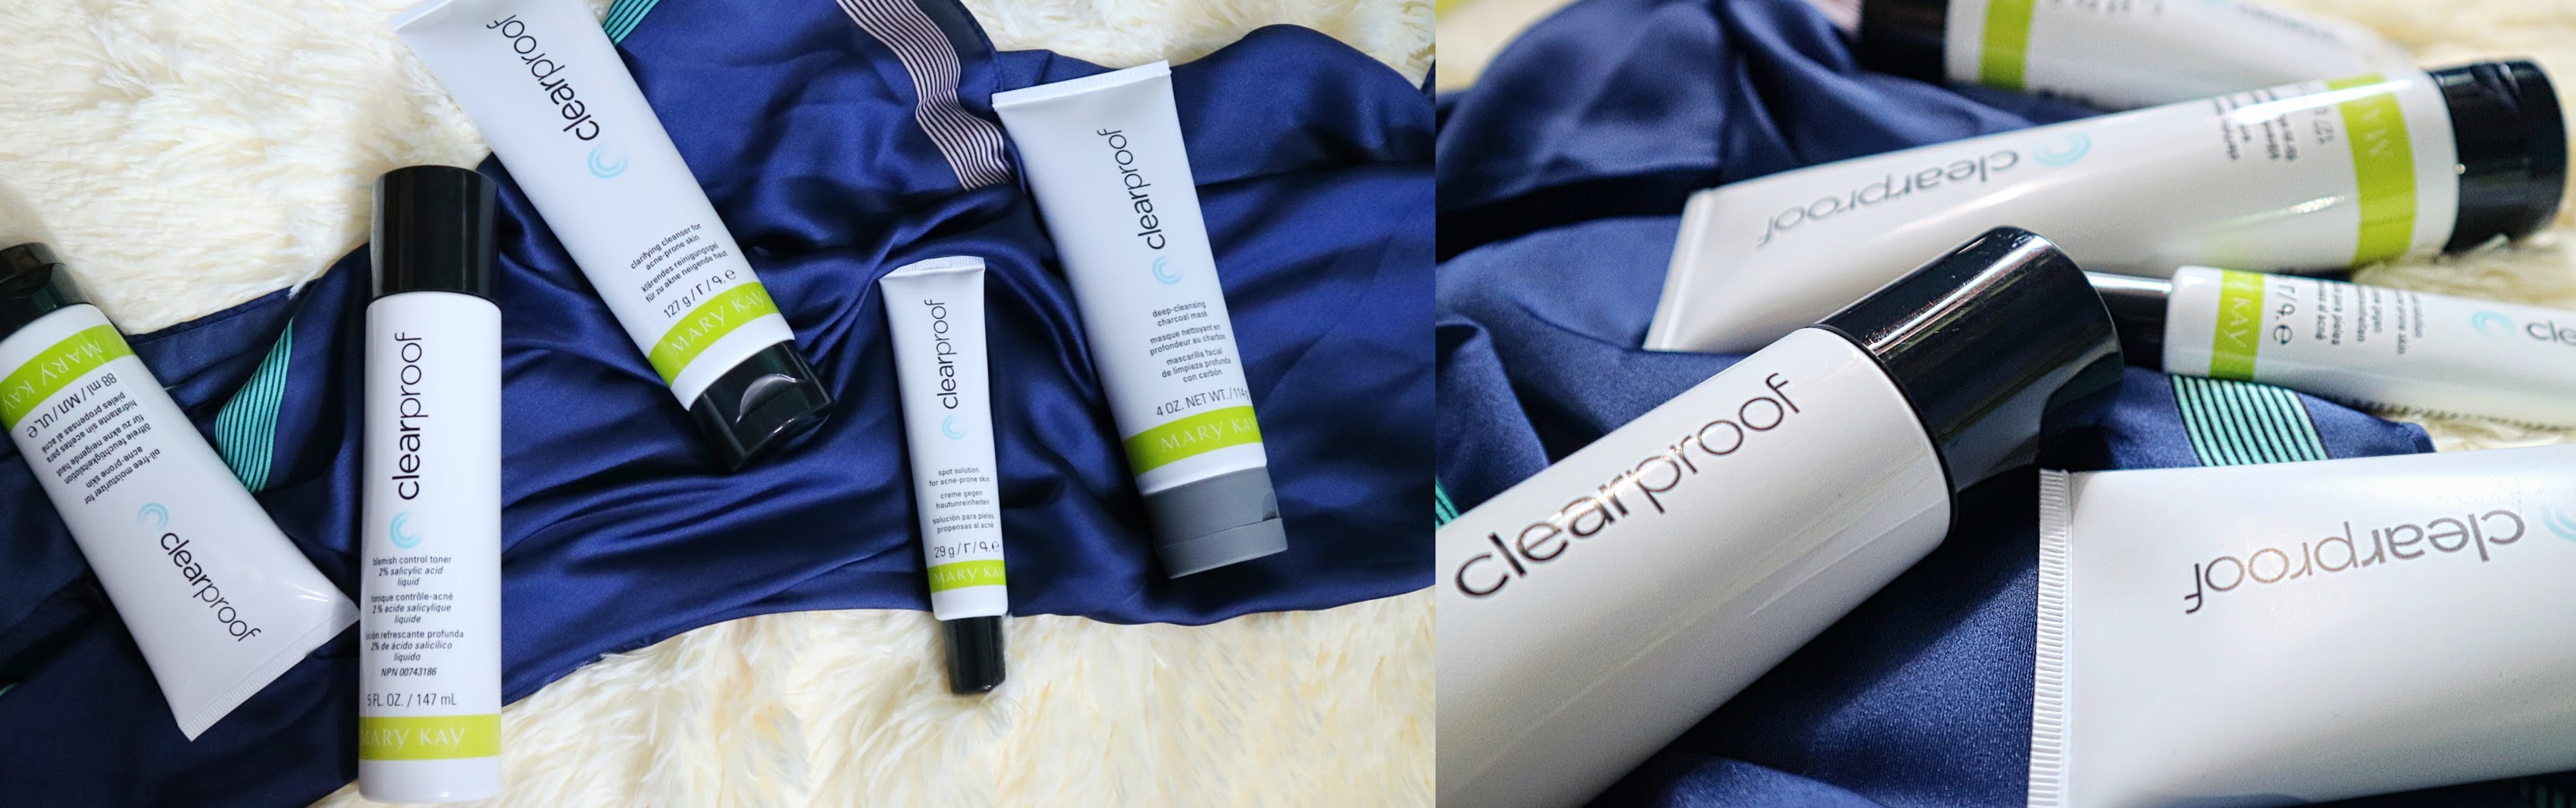 MARY KAY CLEAR PROOF ACNE SYSTEM SET